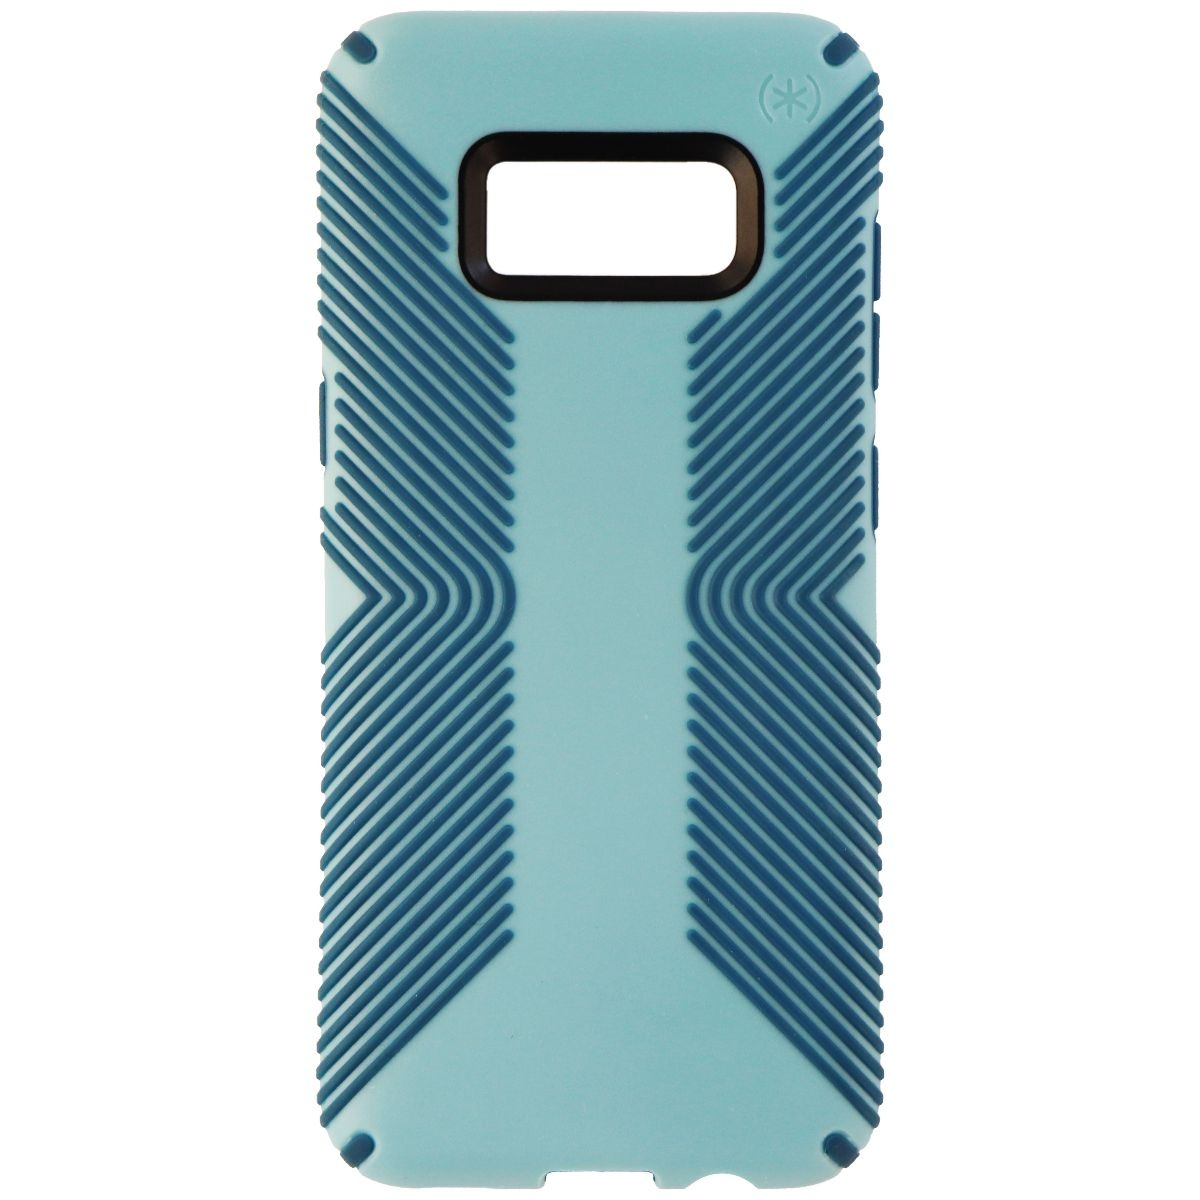 Speck Presido Grip Series Protective Case Cover or Samsung Galaxy S8 - Tide Blue